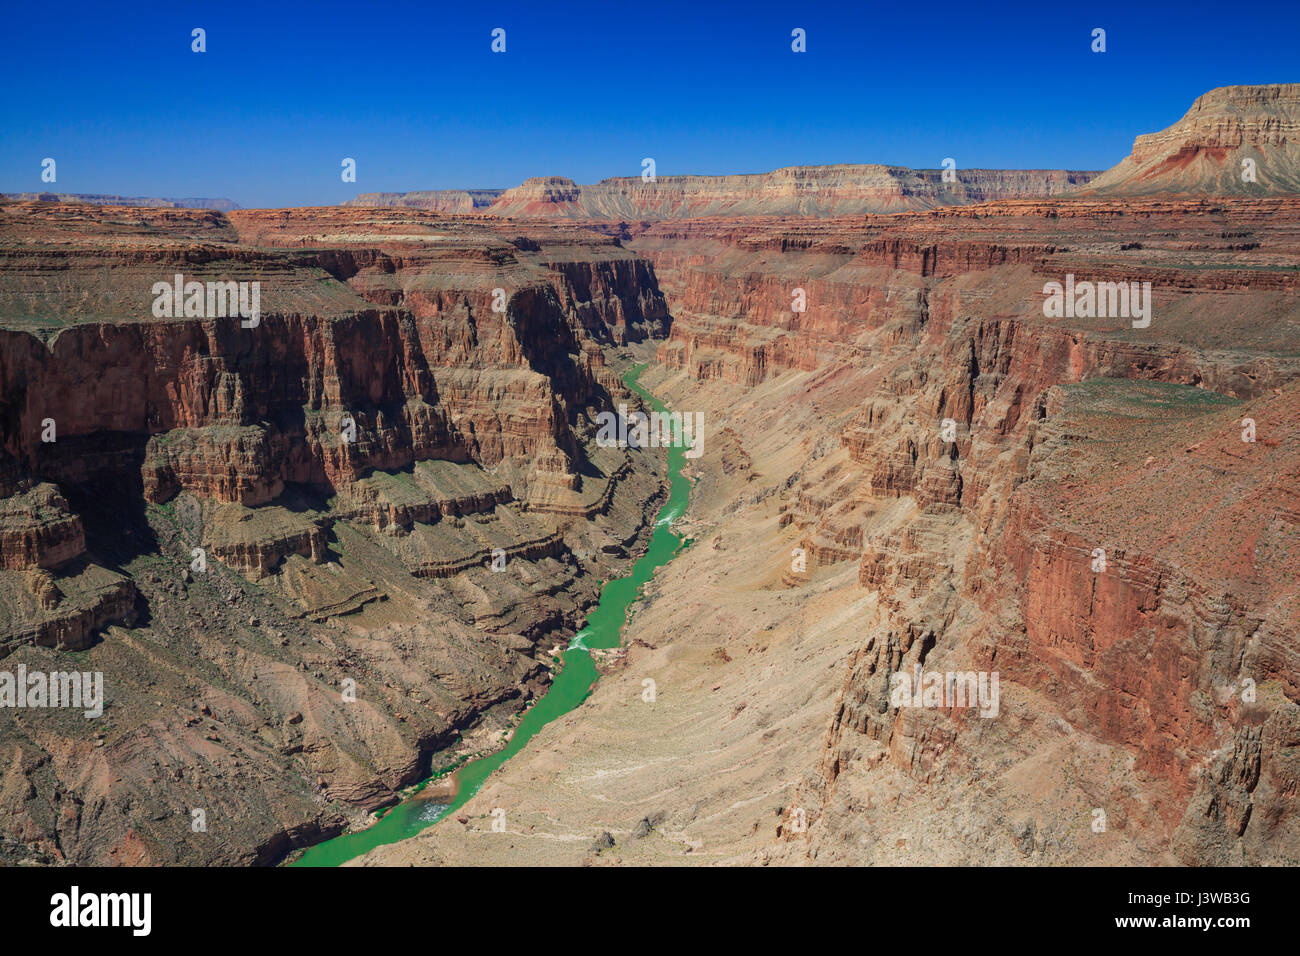 colorado river in the fishtail rapids area of grand canyon national park, arizona Stock Photo